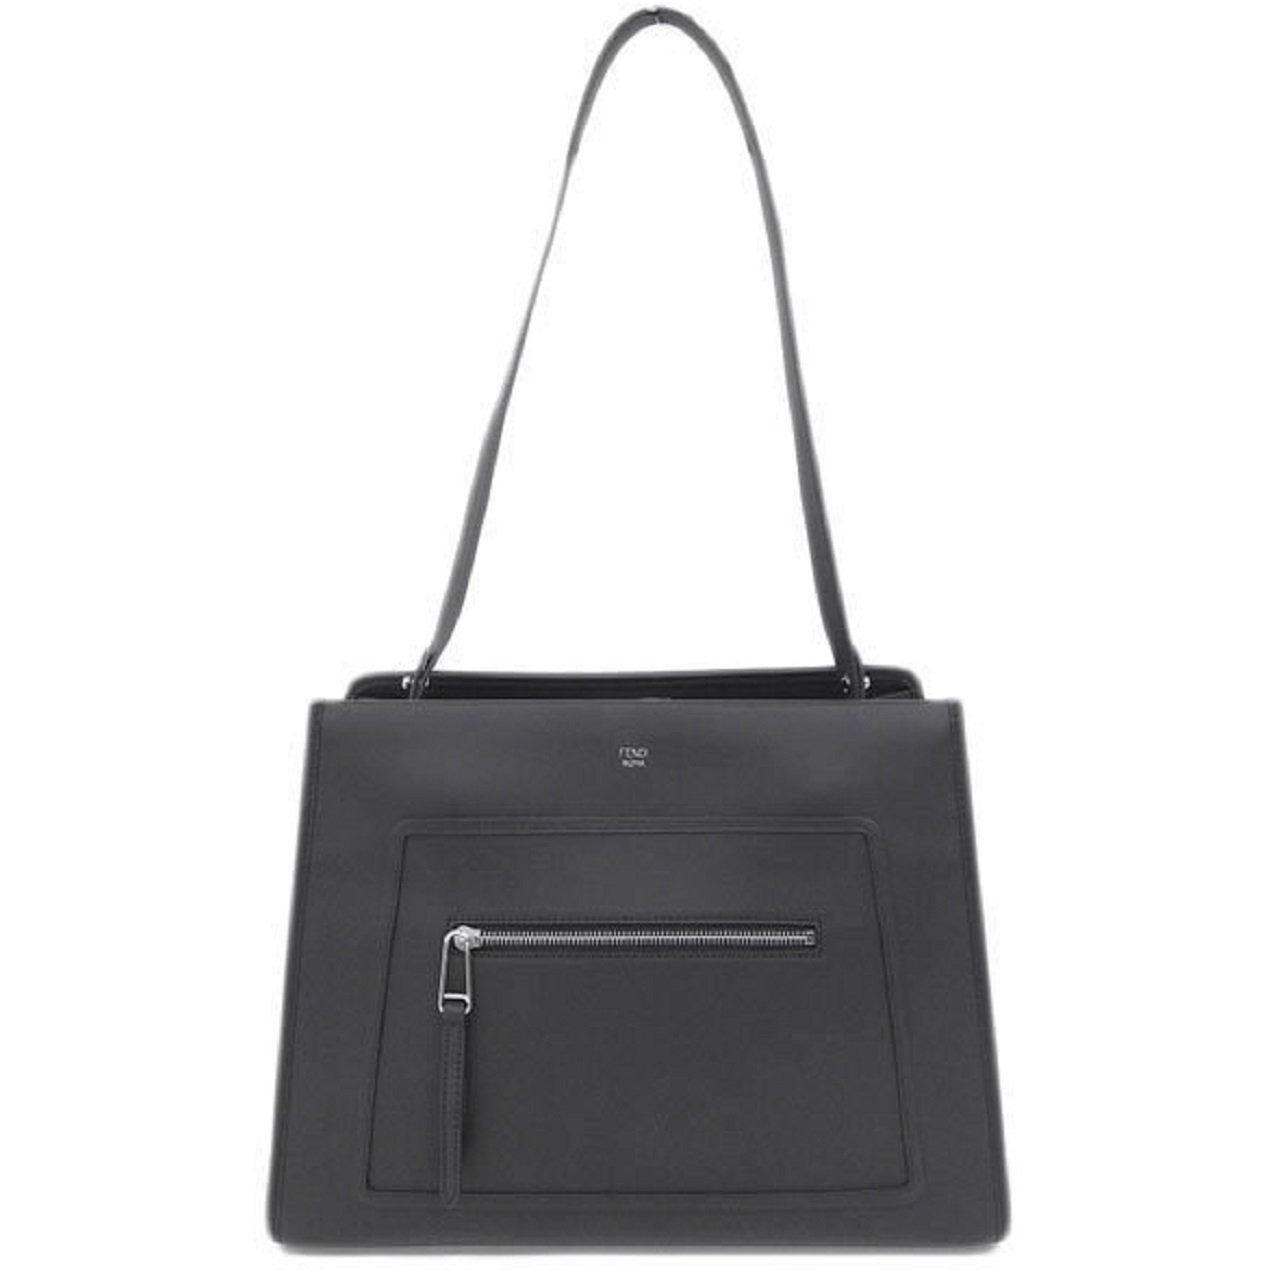 Fendi Runway Shopping Bag Calf Leather Black Palladium Metal Hardware 8BH343